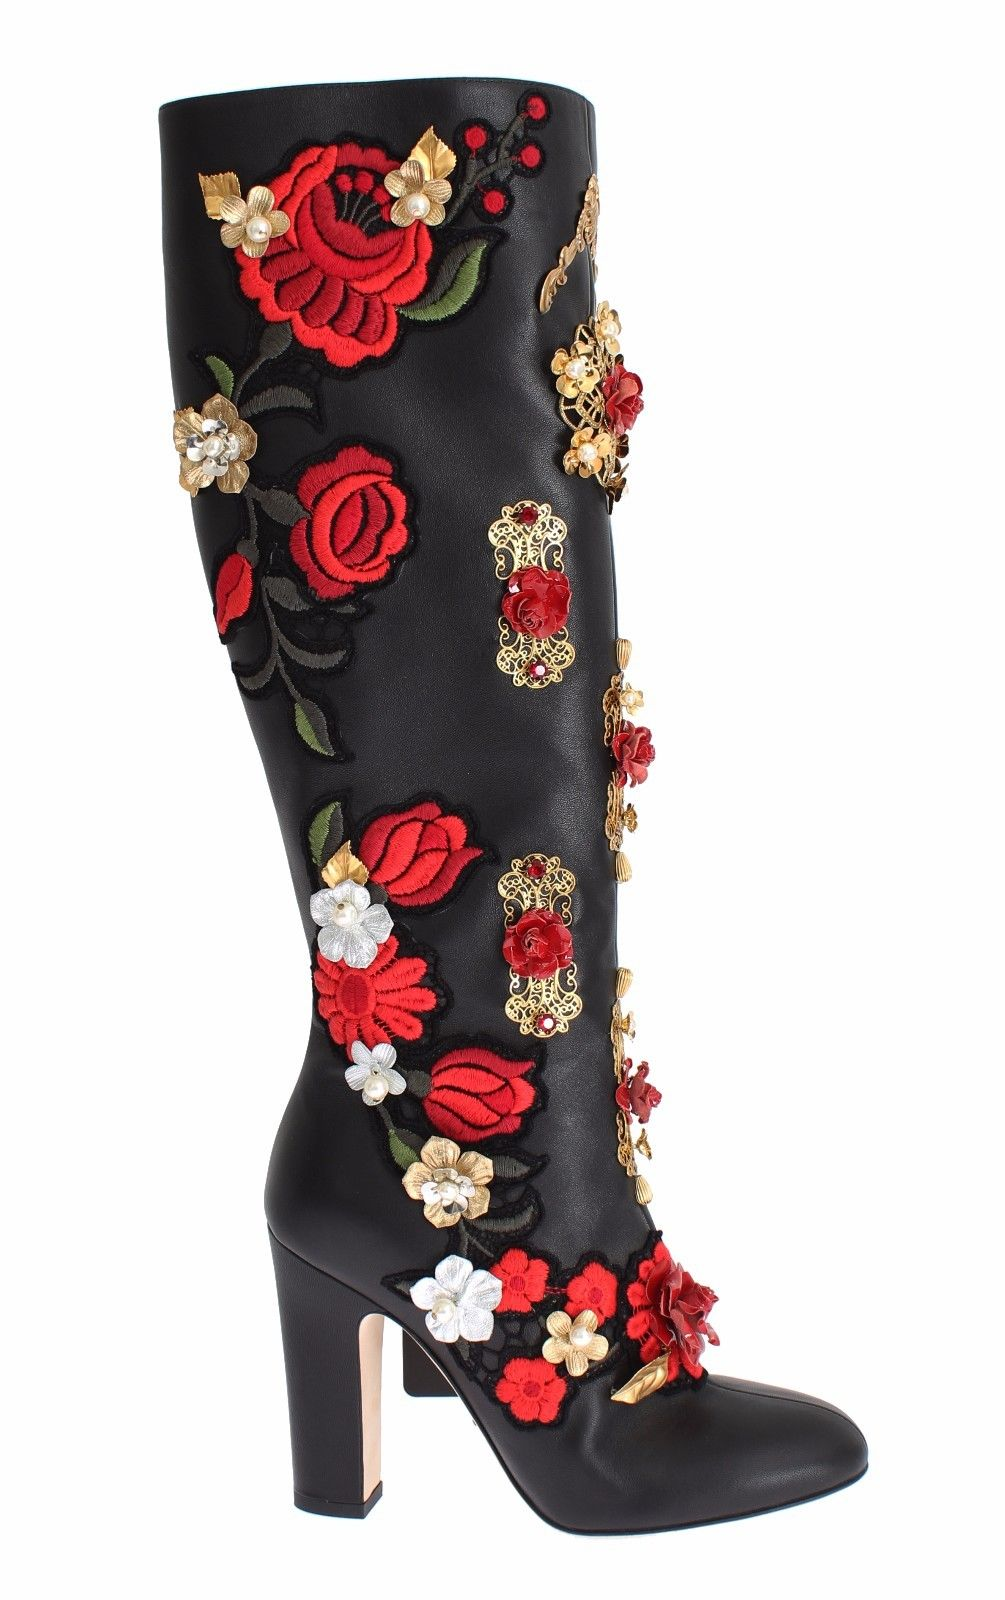 Dolce & Gabbana - Black Red Roses Crystal Gold Heart Leather